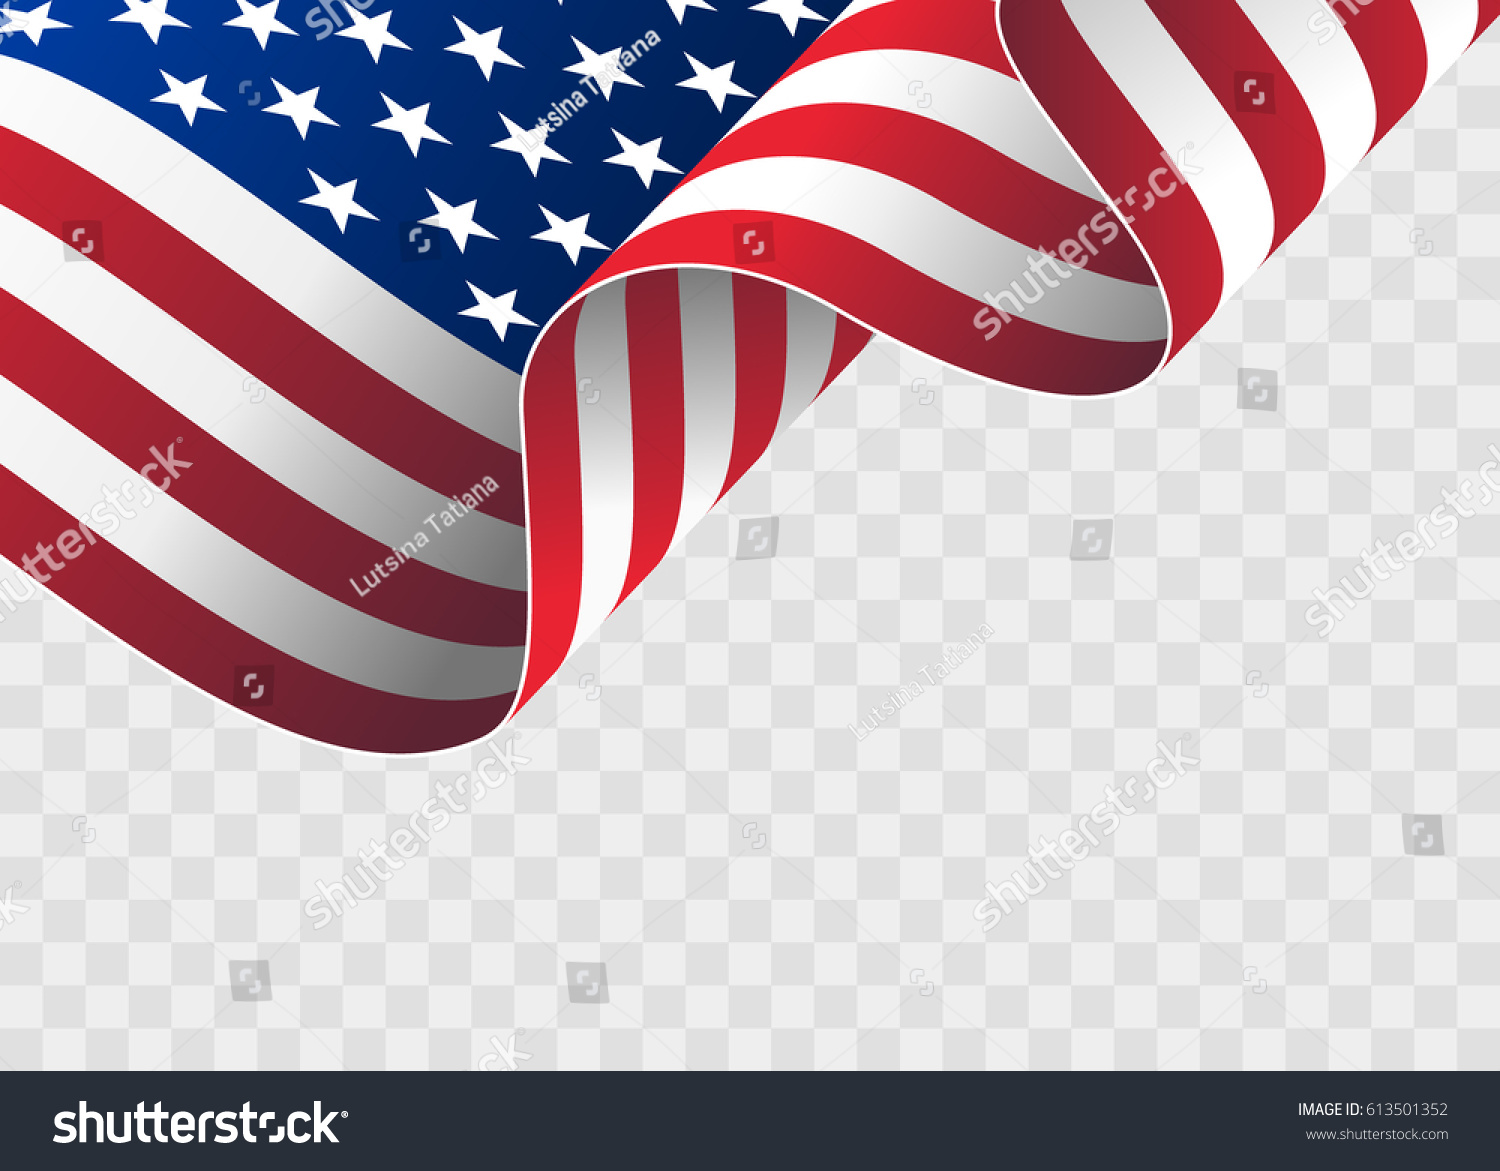 waving flag of the United States of America. illustration of wavy American Flag for Independence Day. American flag on transparent background - vector illustration. #613501352